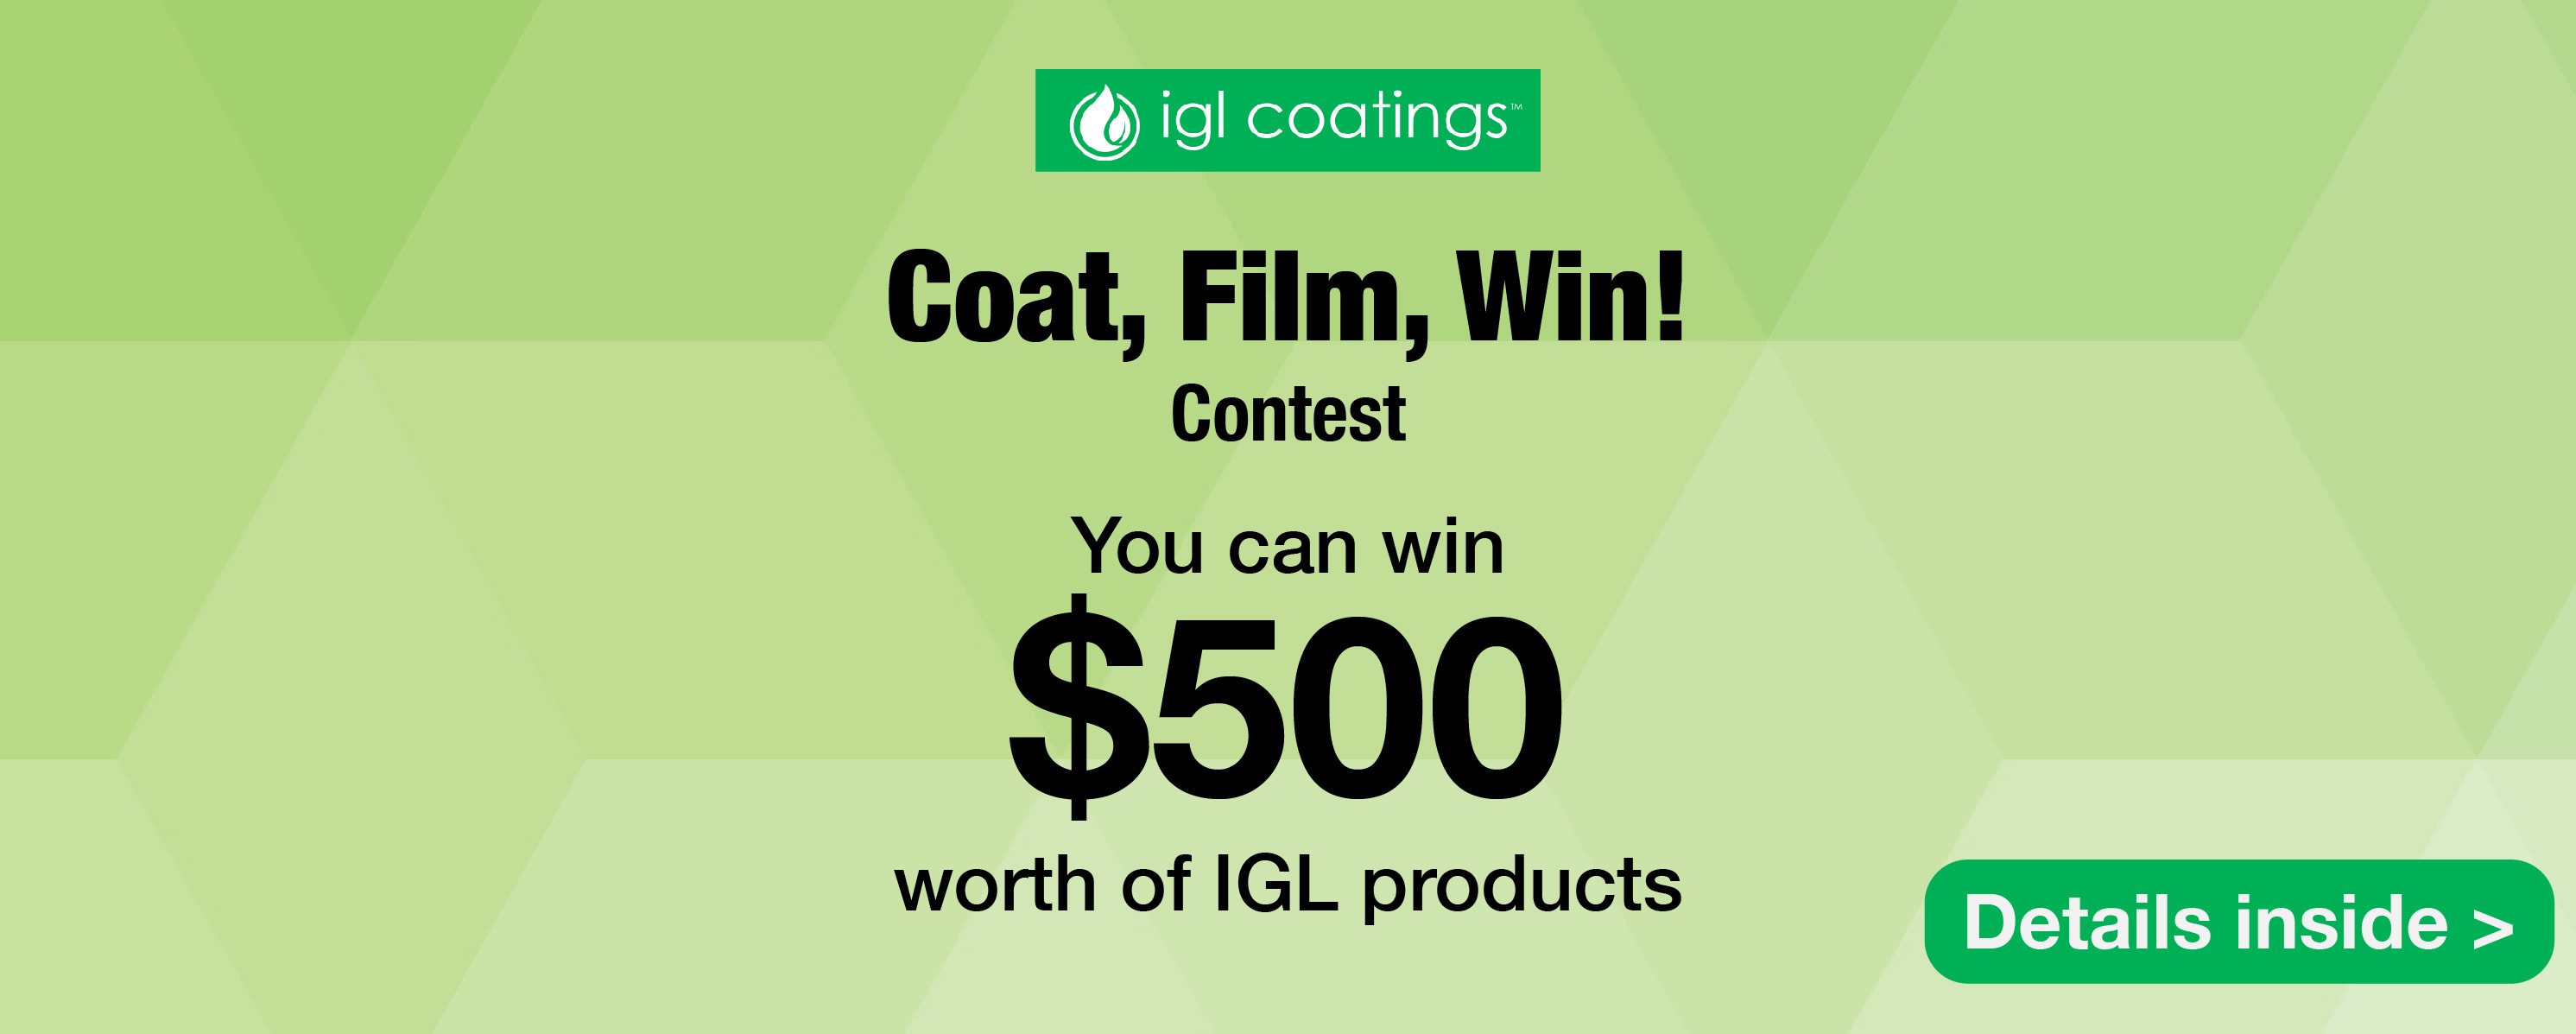 igl coatings coat film win contest